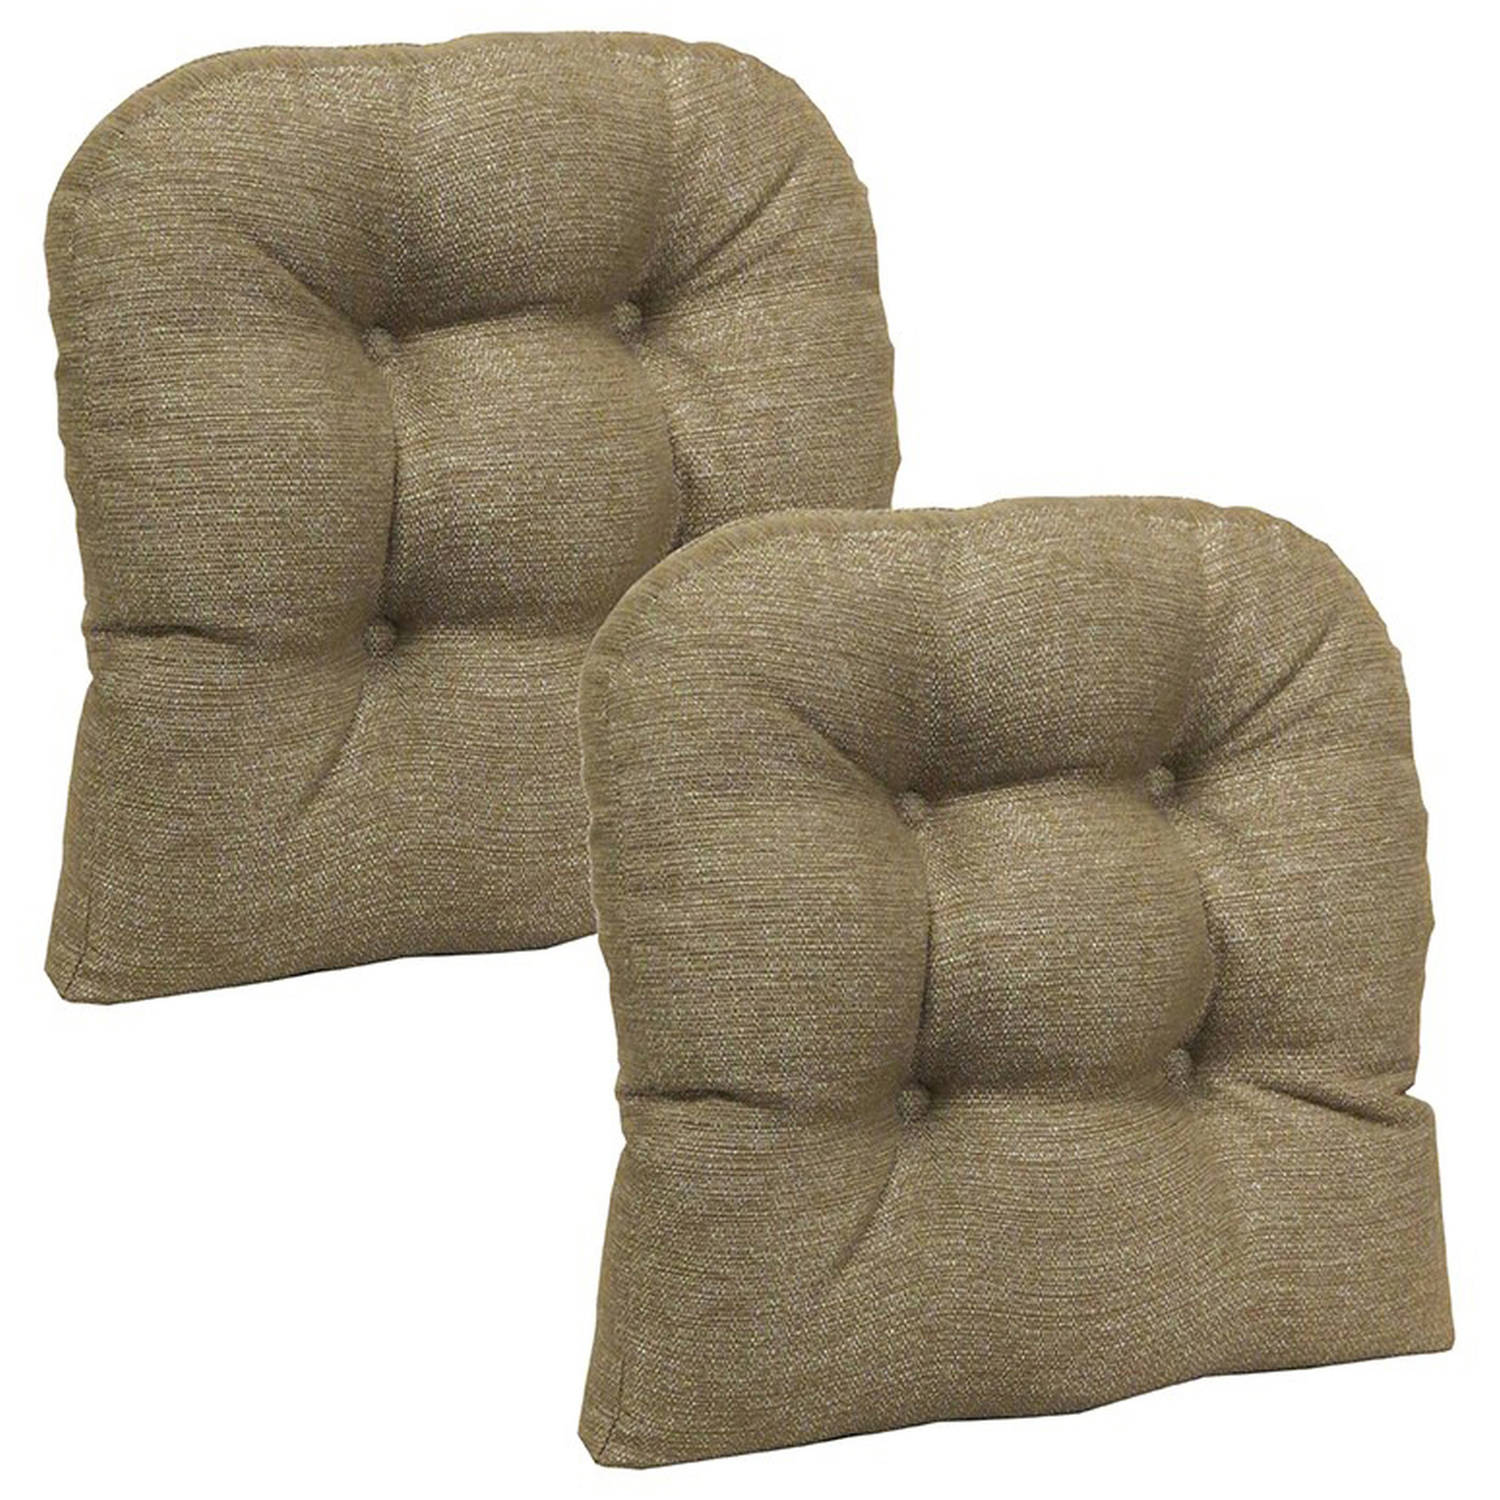 "Gripper Non-Slip 15"" x 15"" Omega Tufted Universal Chair Cushions, Set of 2"